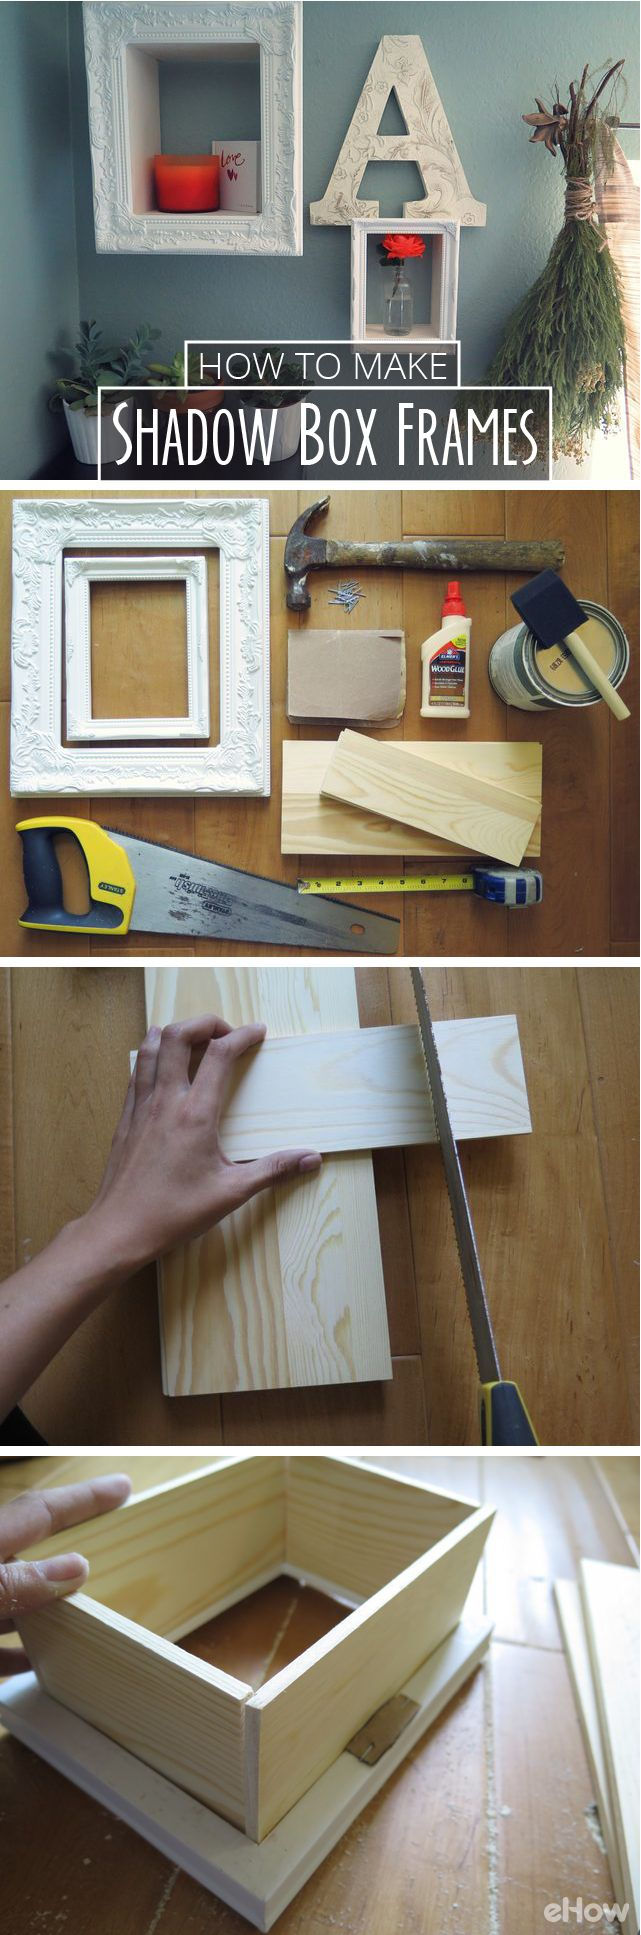 How to Make Shadow Box Frames | For a Home Sweet Home | Pinterest ...